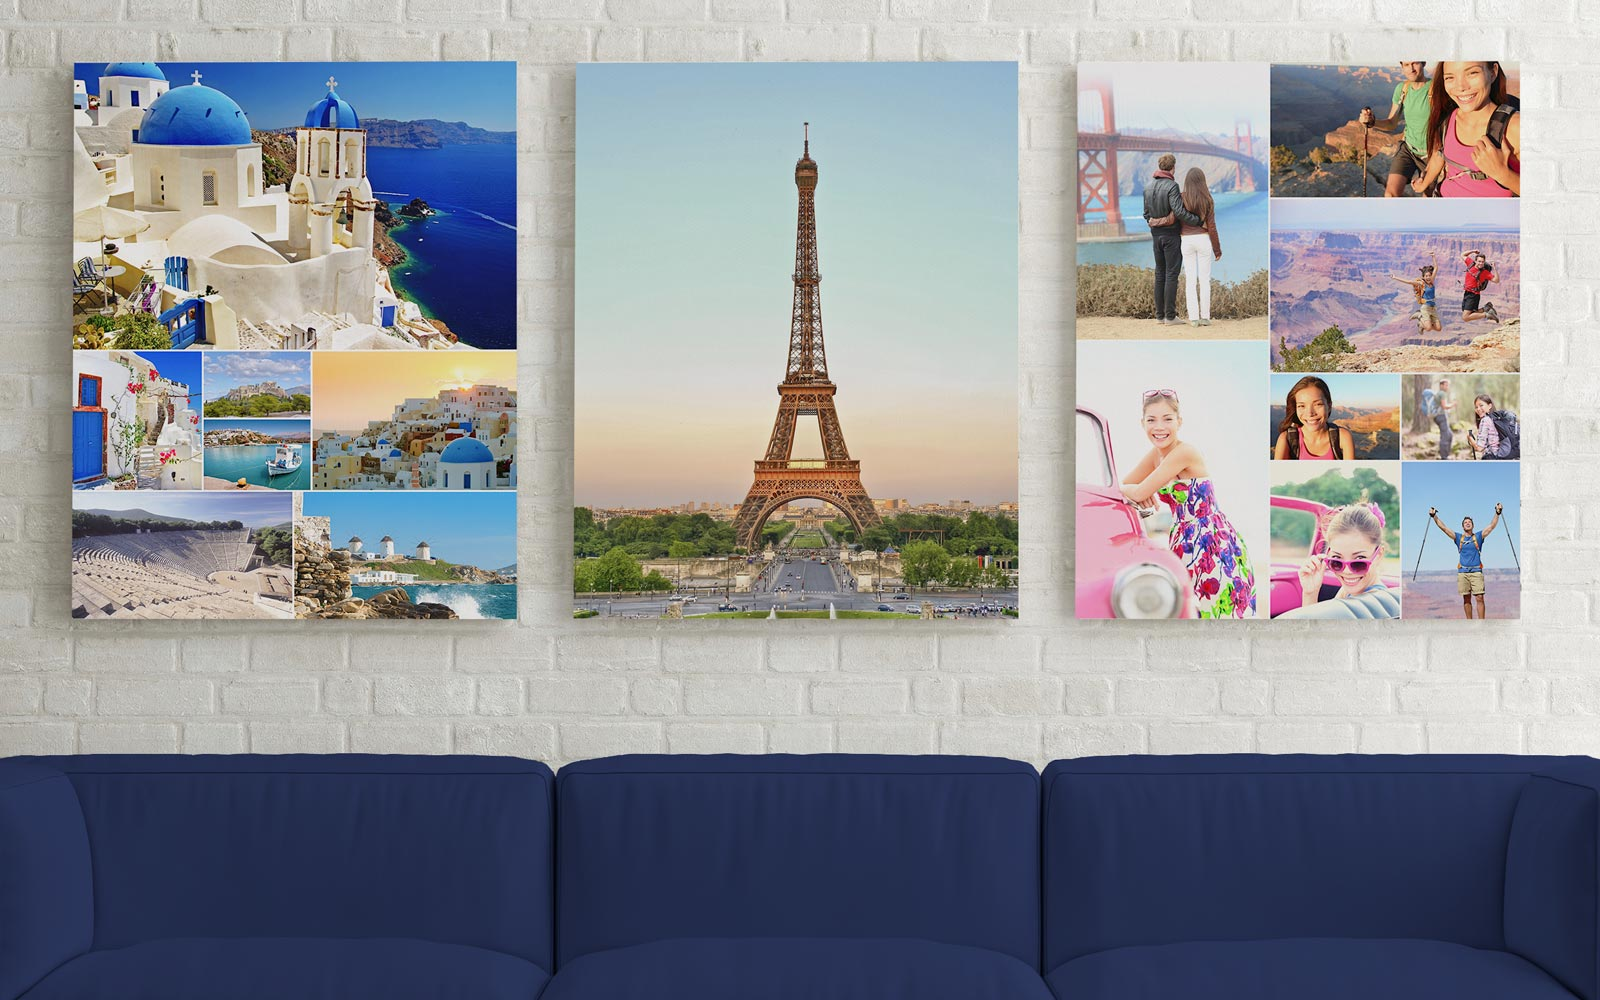 Collage.com canvases